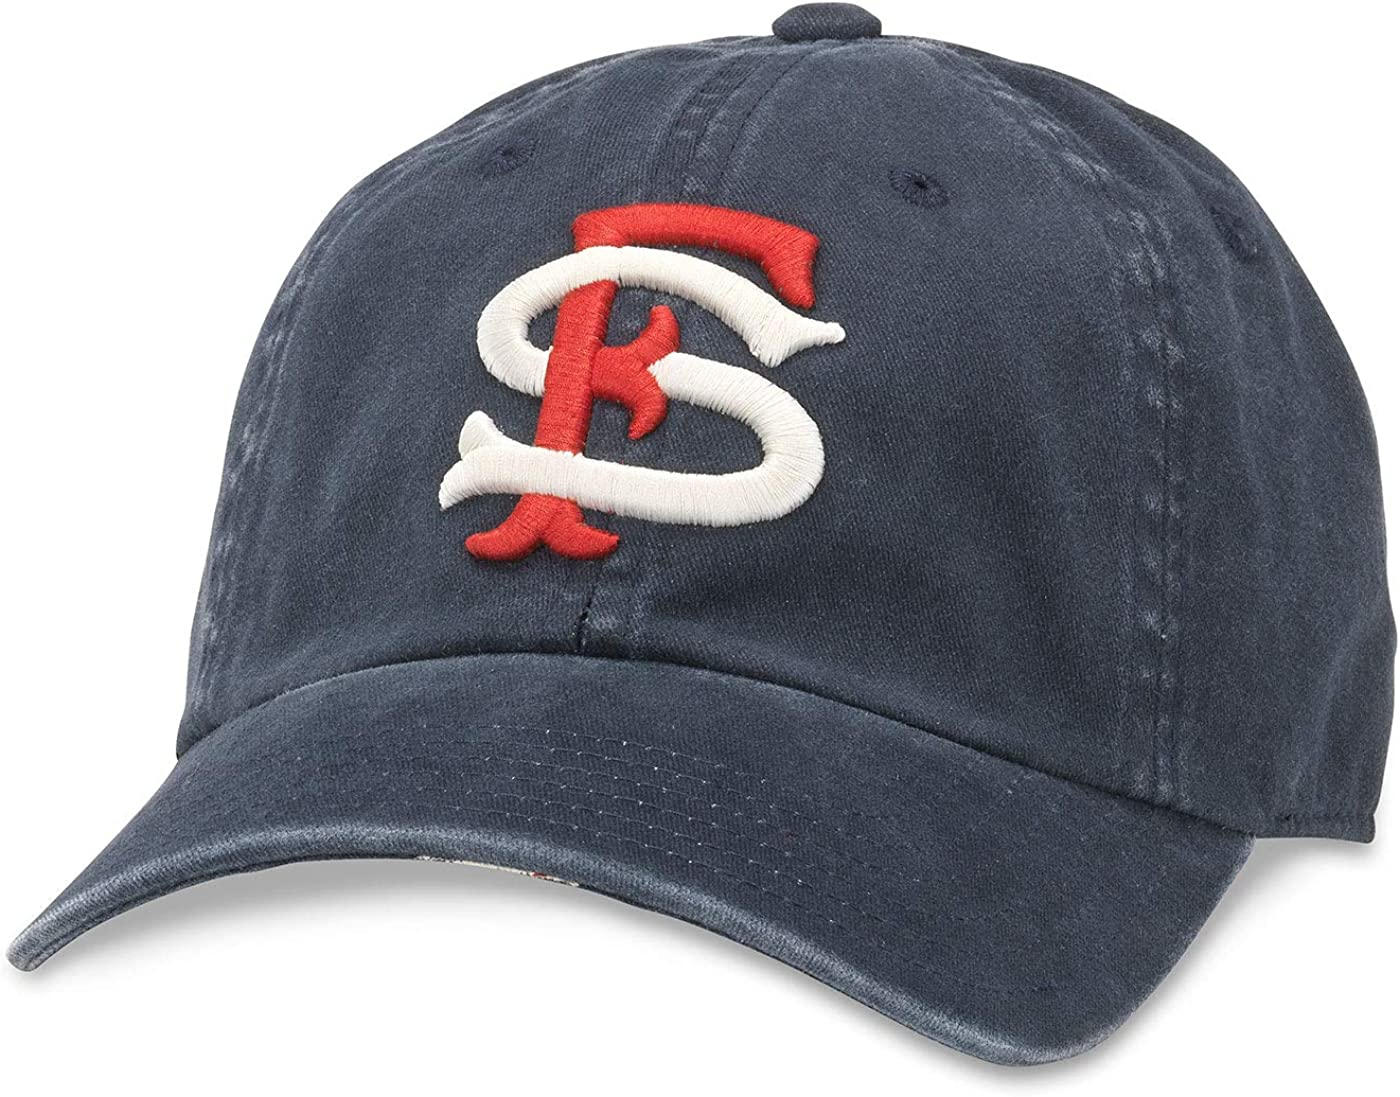 American Needle Minor League Baseball New Raglin Washed Slouch Adjustable Hat